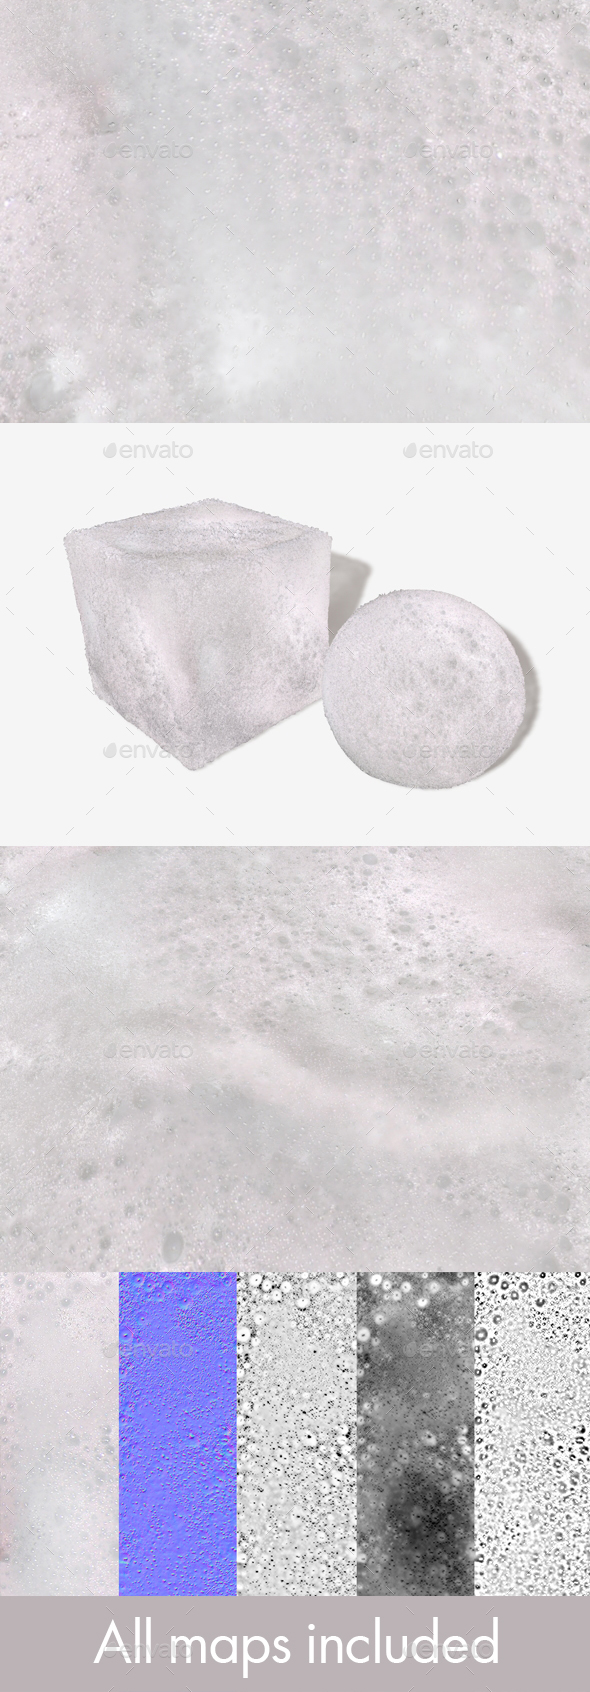 Bubble Bath Water Seamless Texture - 3DOcean Item for Sale